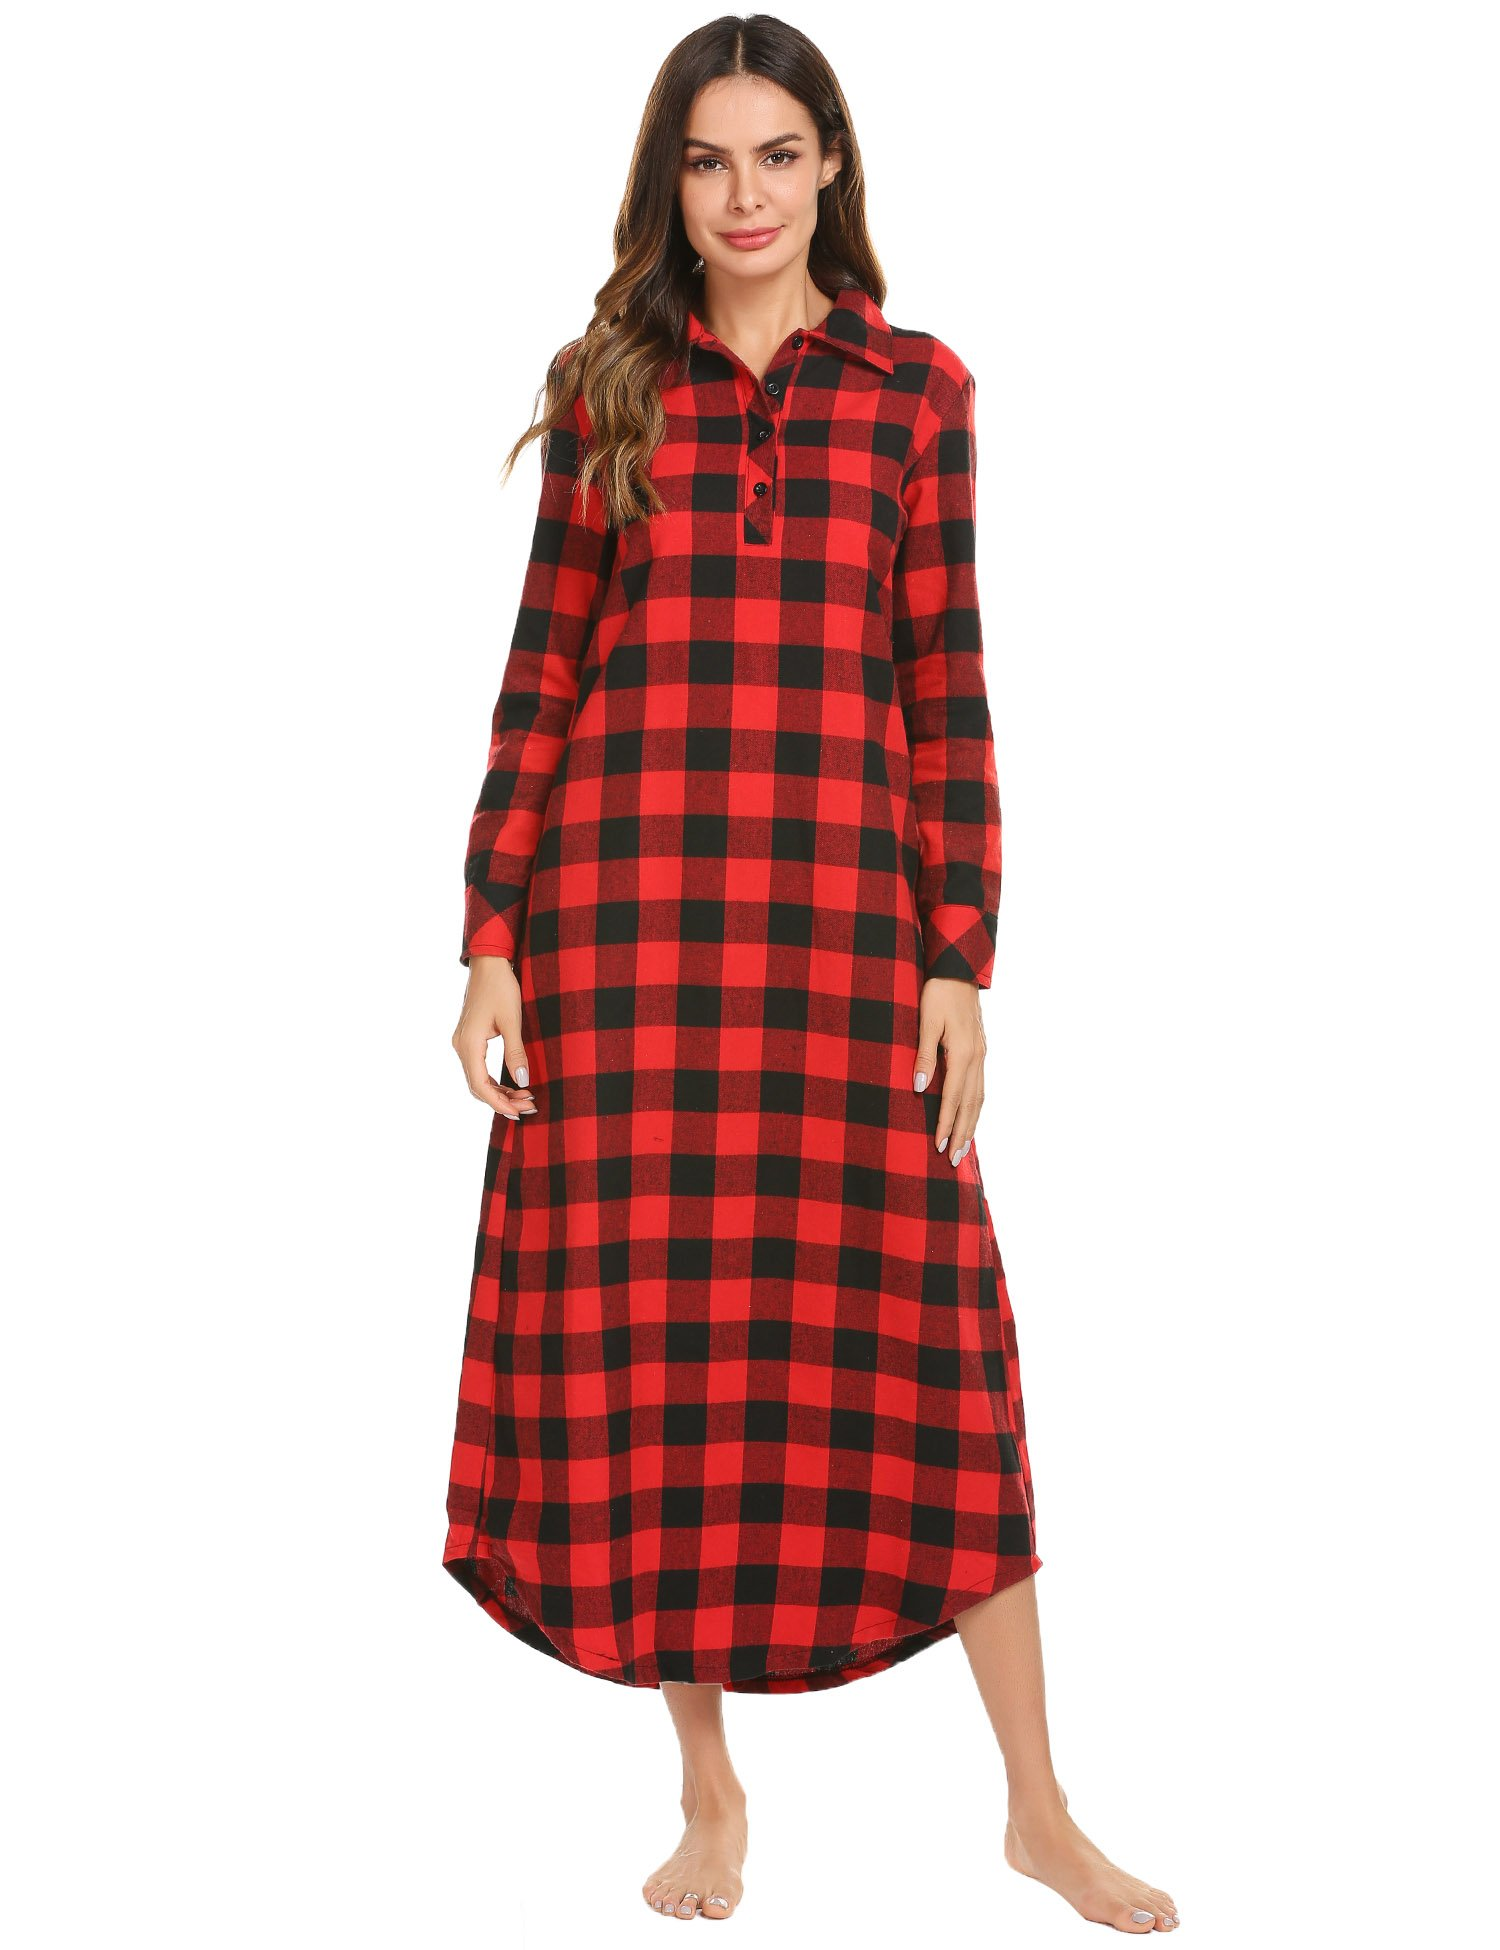 Ekouaer Sleepwear Womens Plaid Casual Collar Nightshirt Long Sleeve Long  Nightgown 6f2f1a369